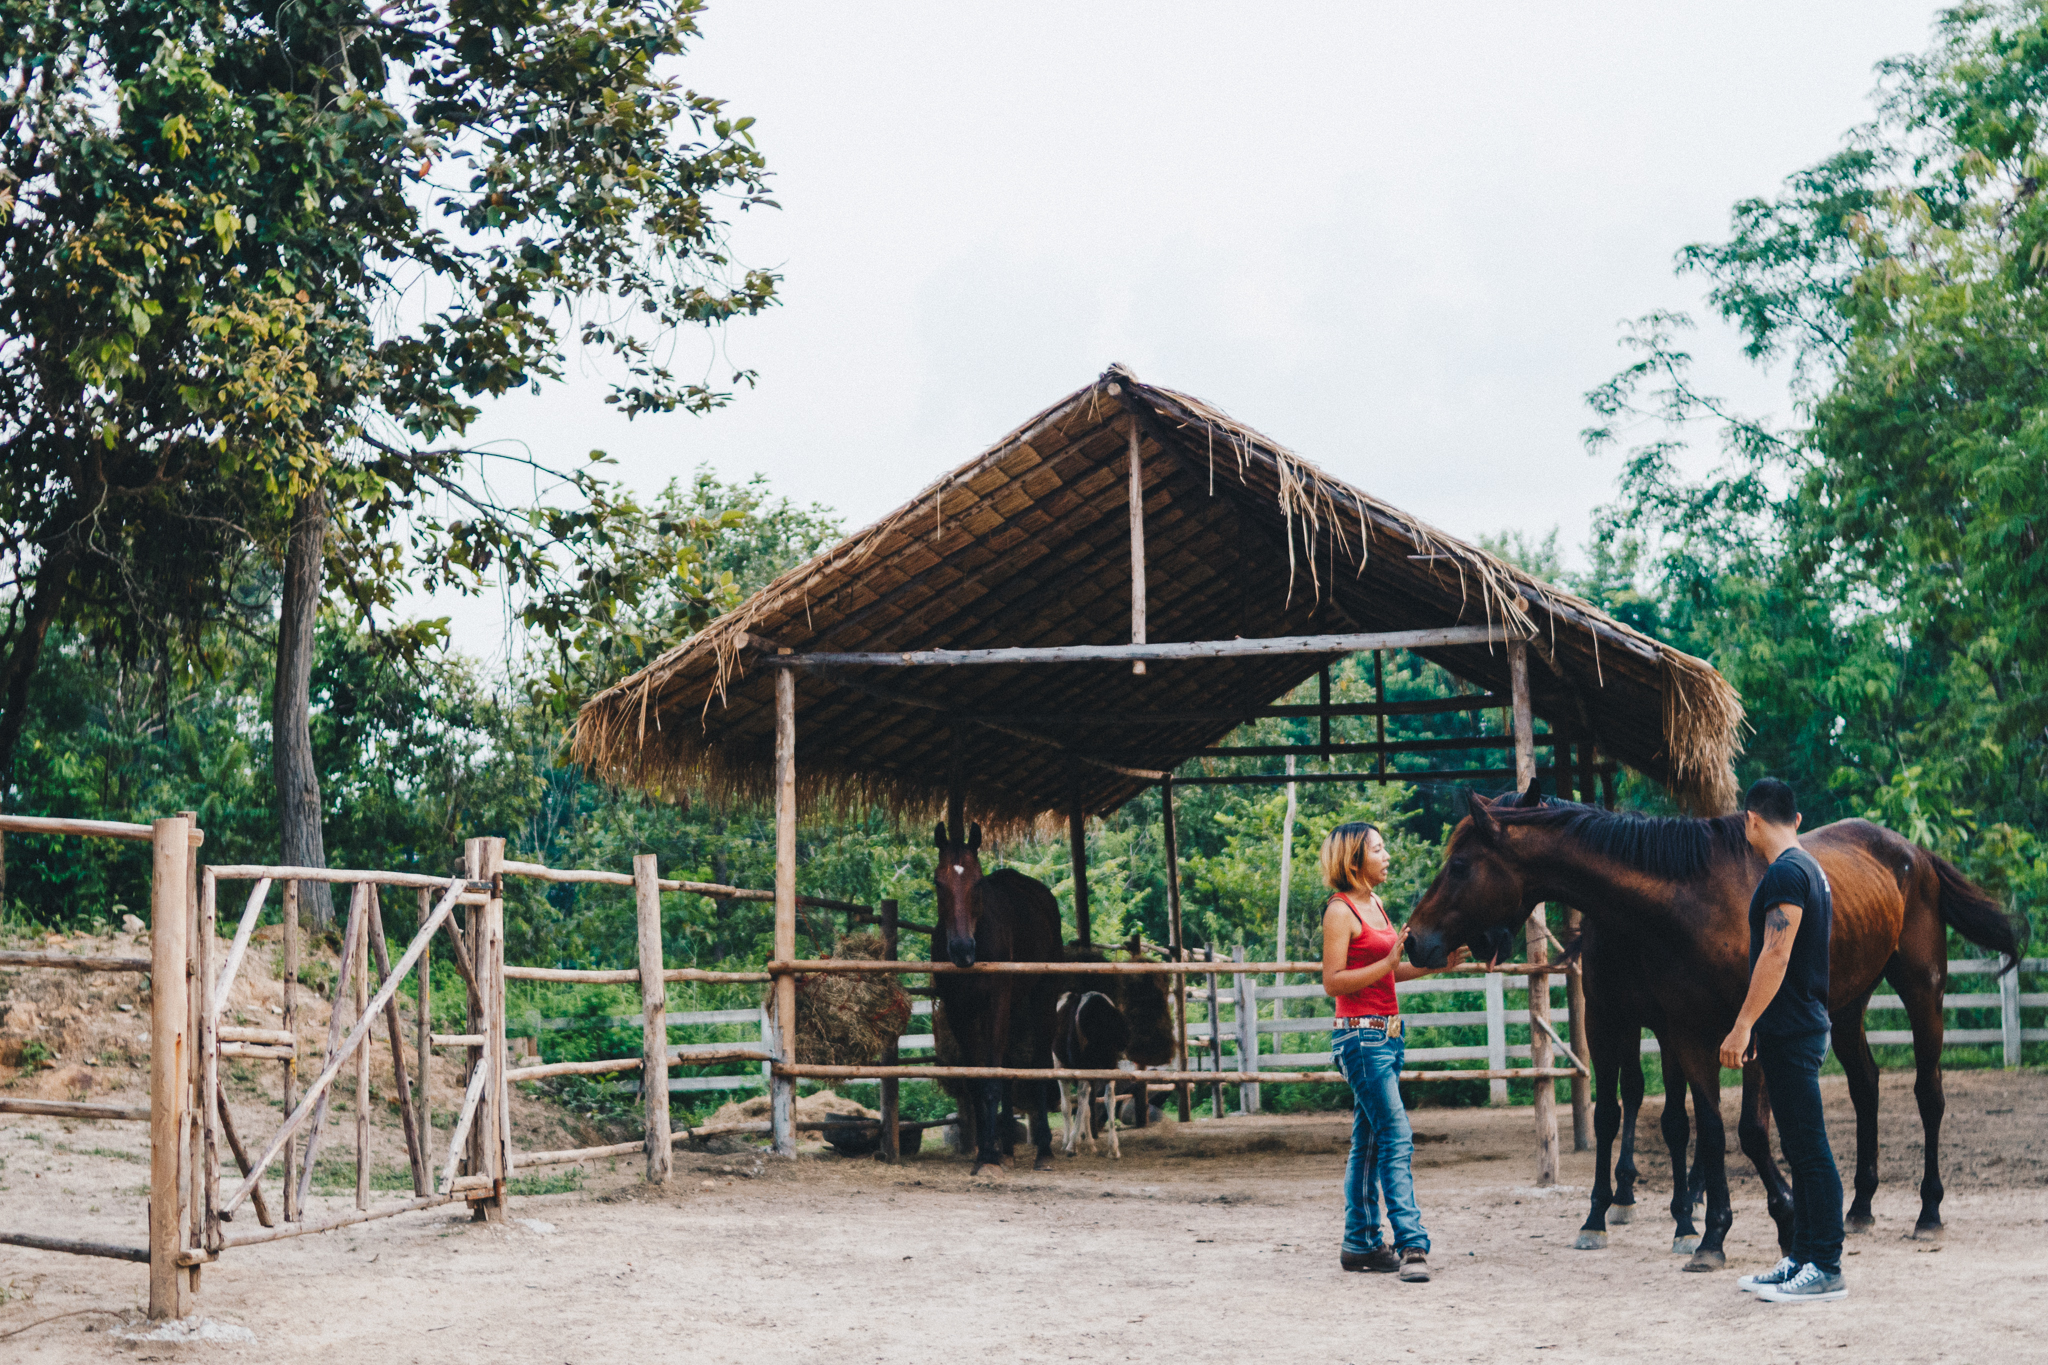 Second-Wind-Horse-Rescue-Ranch-ChaingMai-Suniko-Photo-October-2018-80.jpg